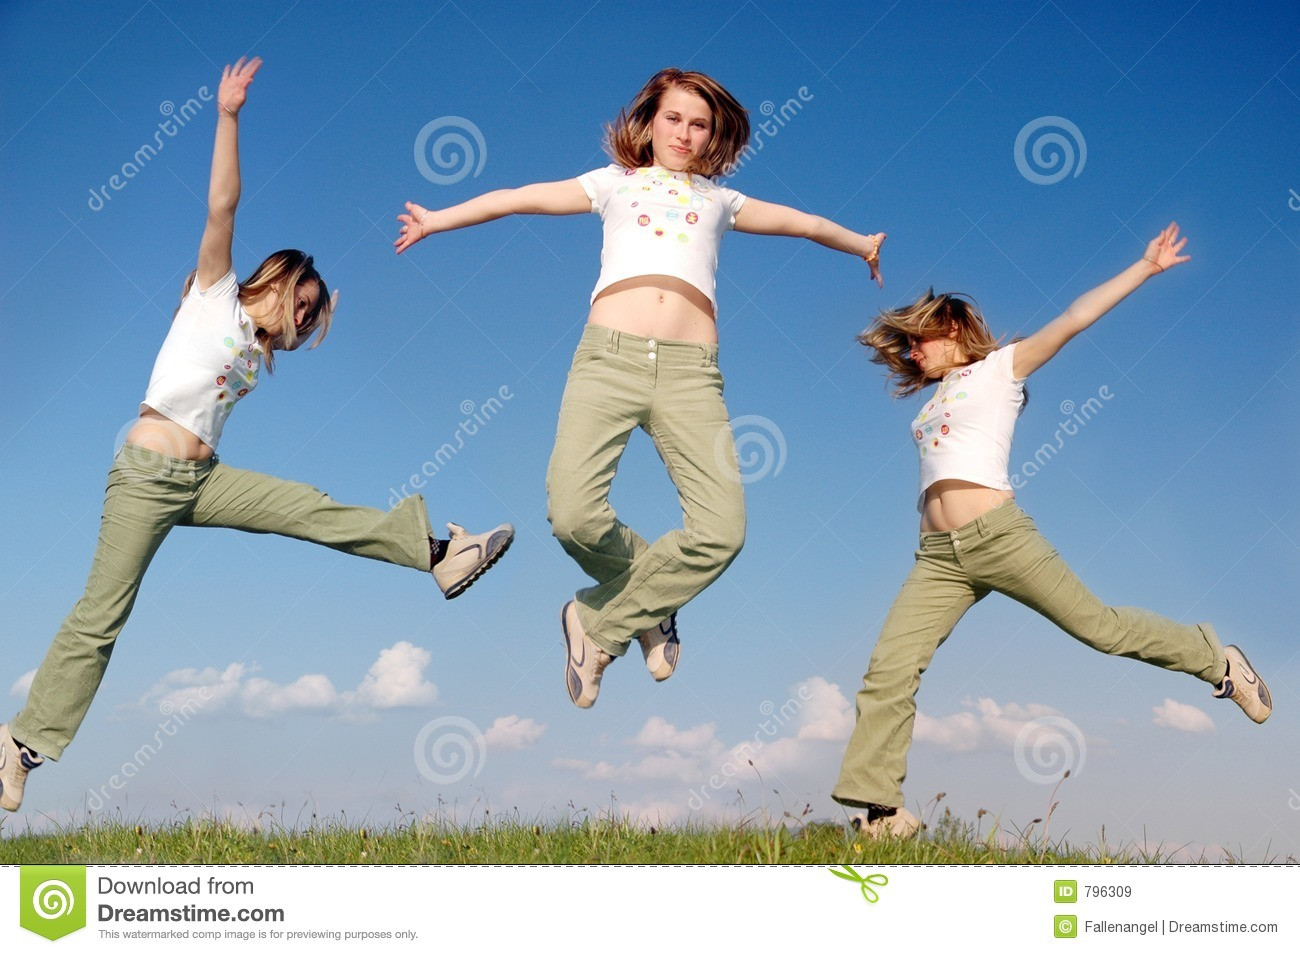 Happy Moments Royalty Free Stock Images - Image: 796309